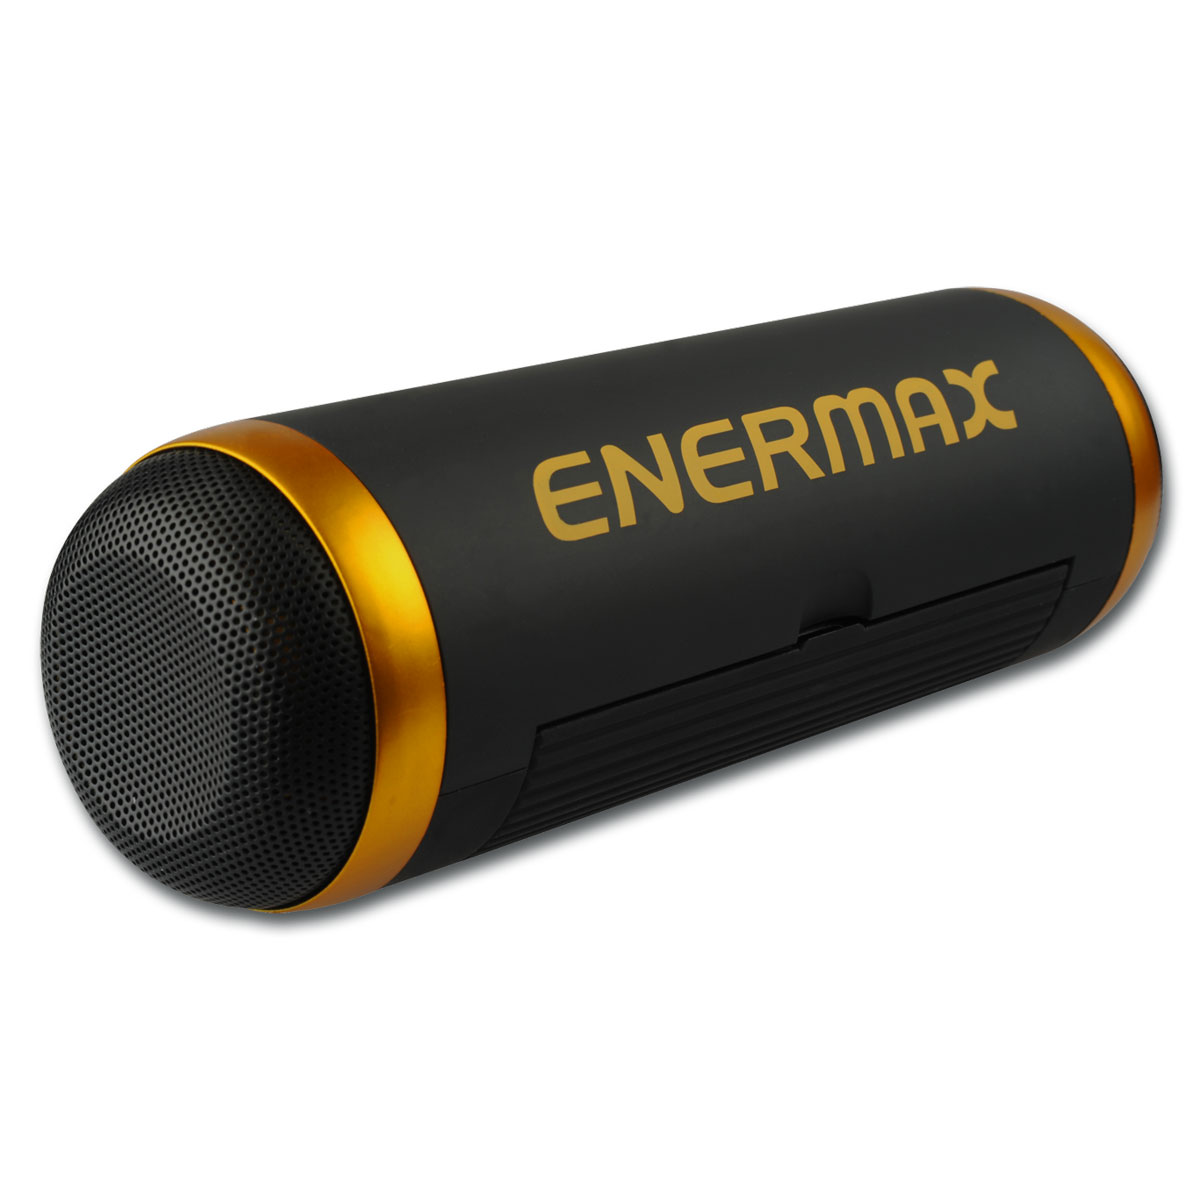 enermax eas01 noir dock enceinte bluetooth enermax sur ldlc. Black Bedroom Furniture Sets. Home Design Ideas